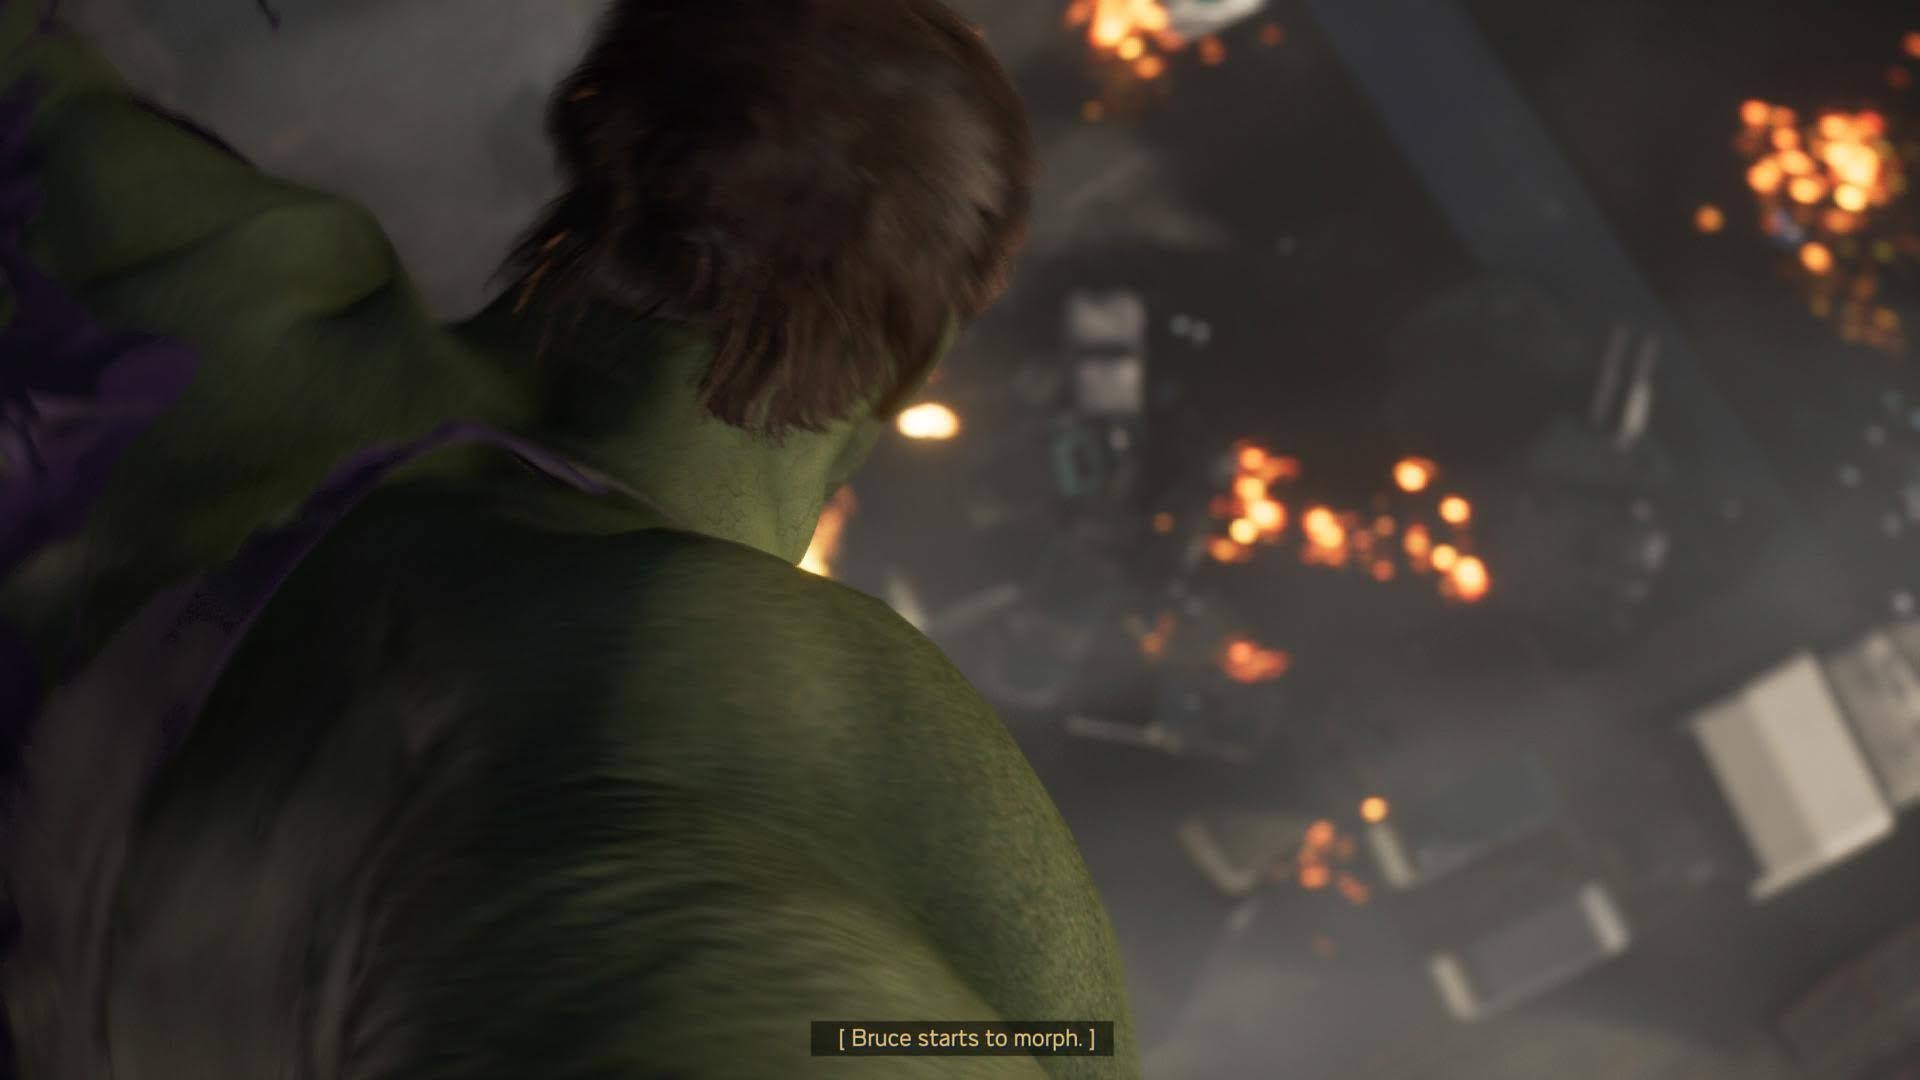 Hulk morphing, illustrating the game's closed captions.